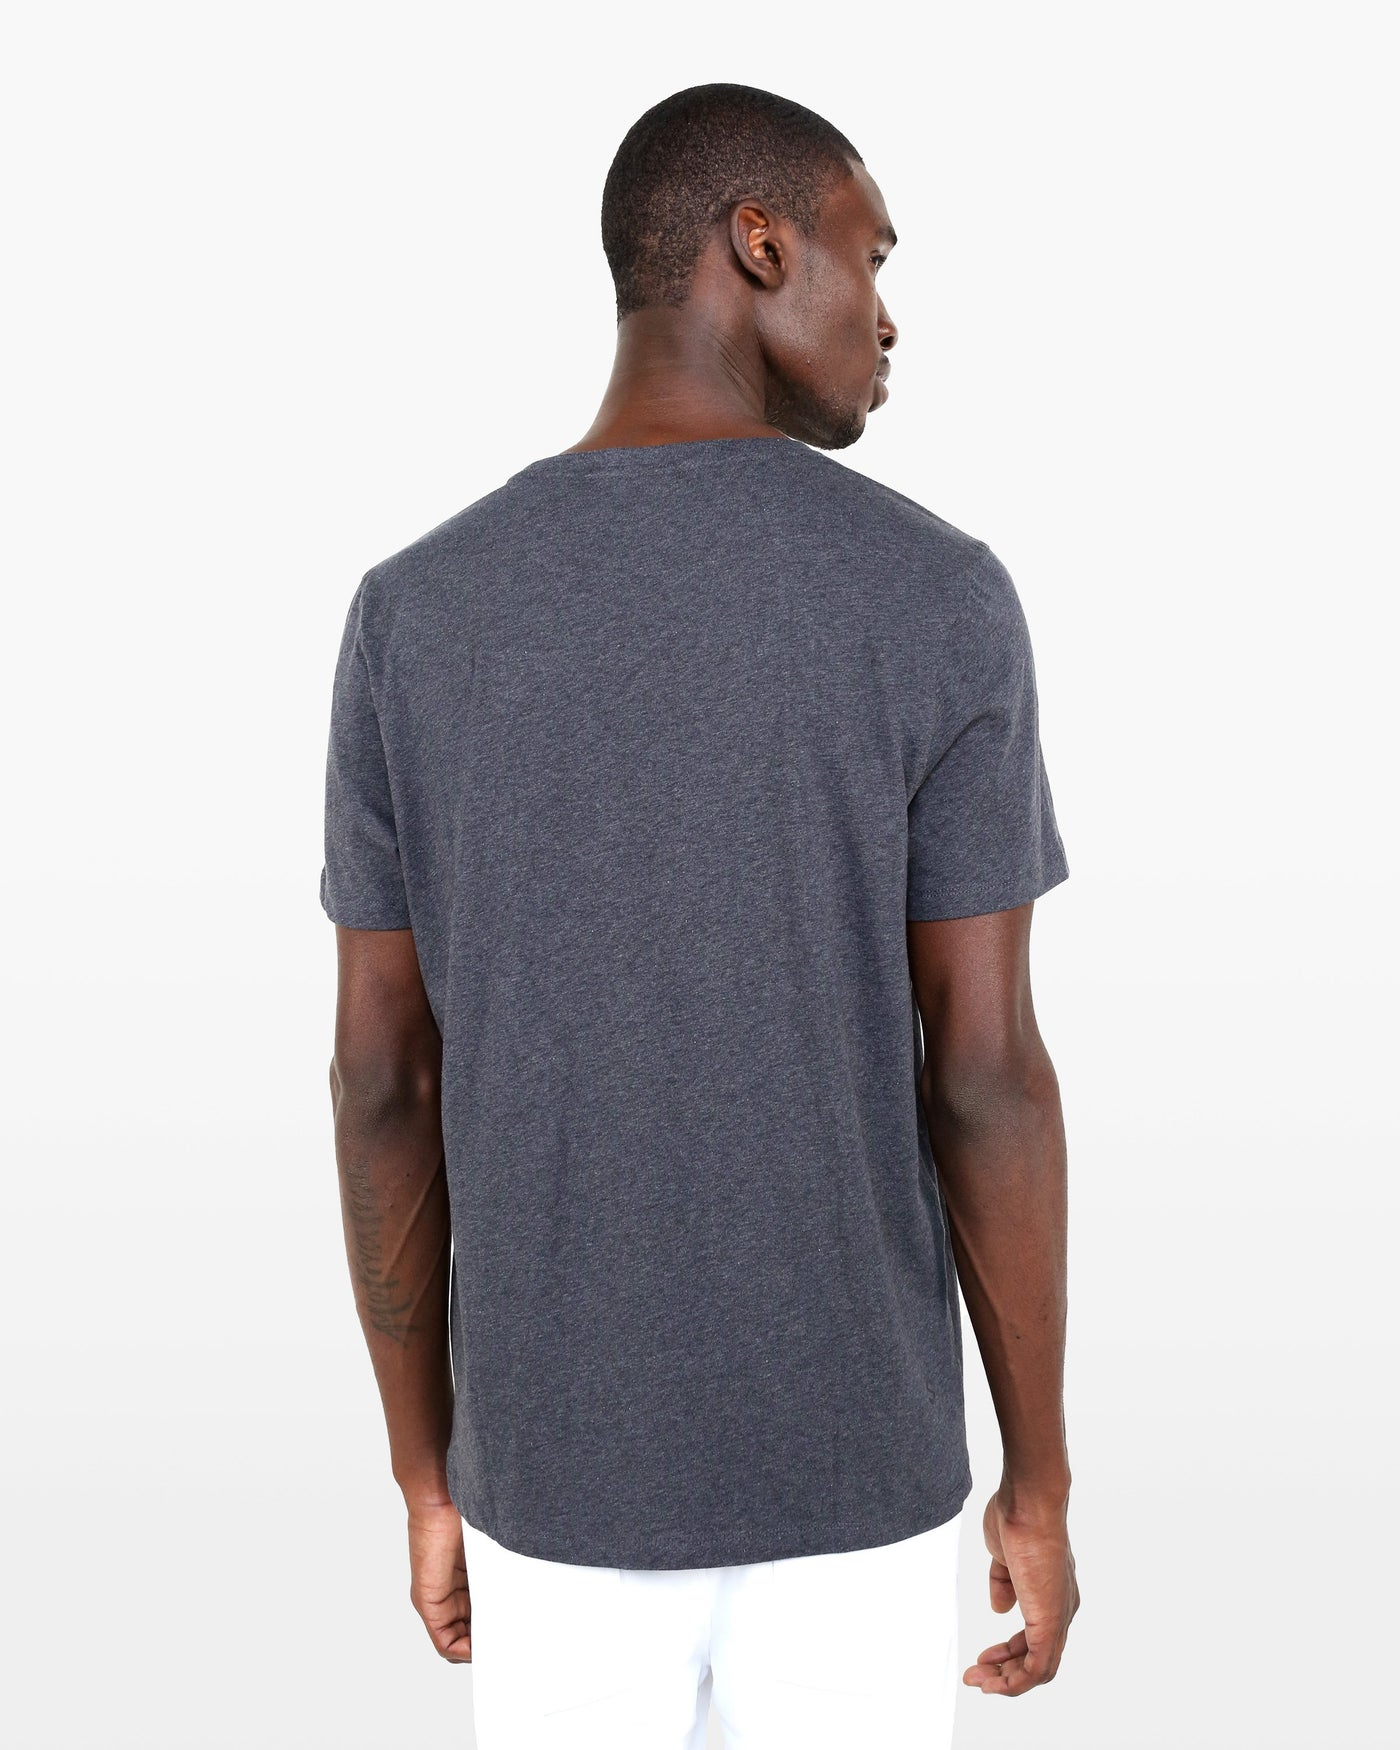 Galileo Tee DRJ in charcoal